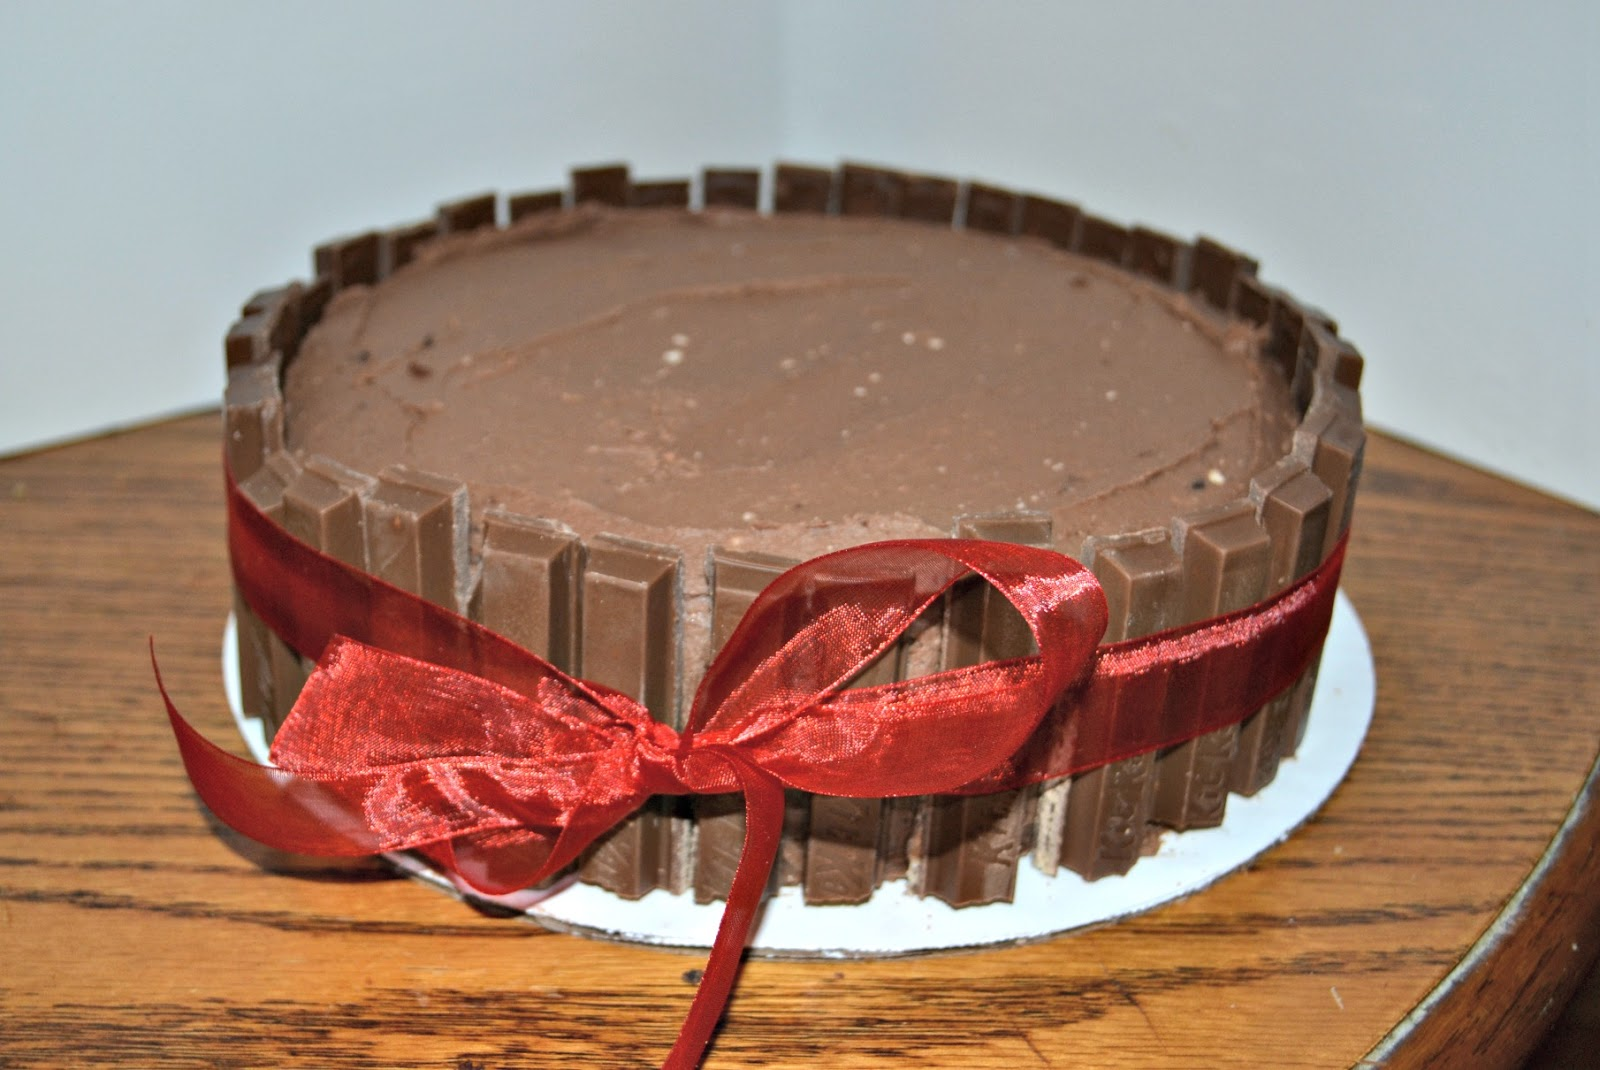 Cake Design Kit Kat : bournville chocolate: Triple Chocolate Cake with Kit Kat s